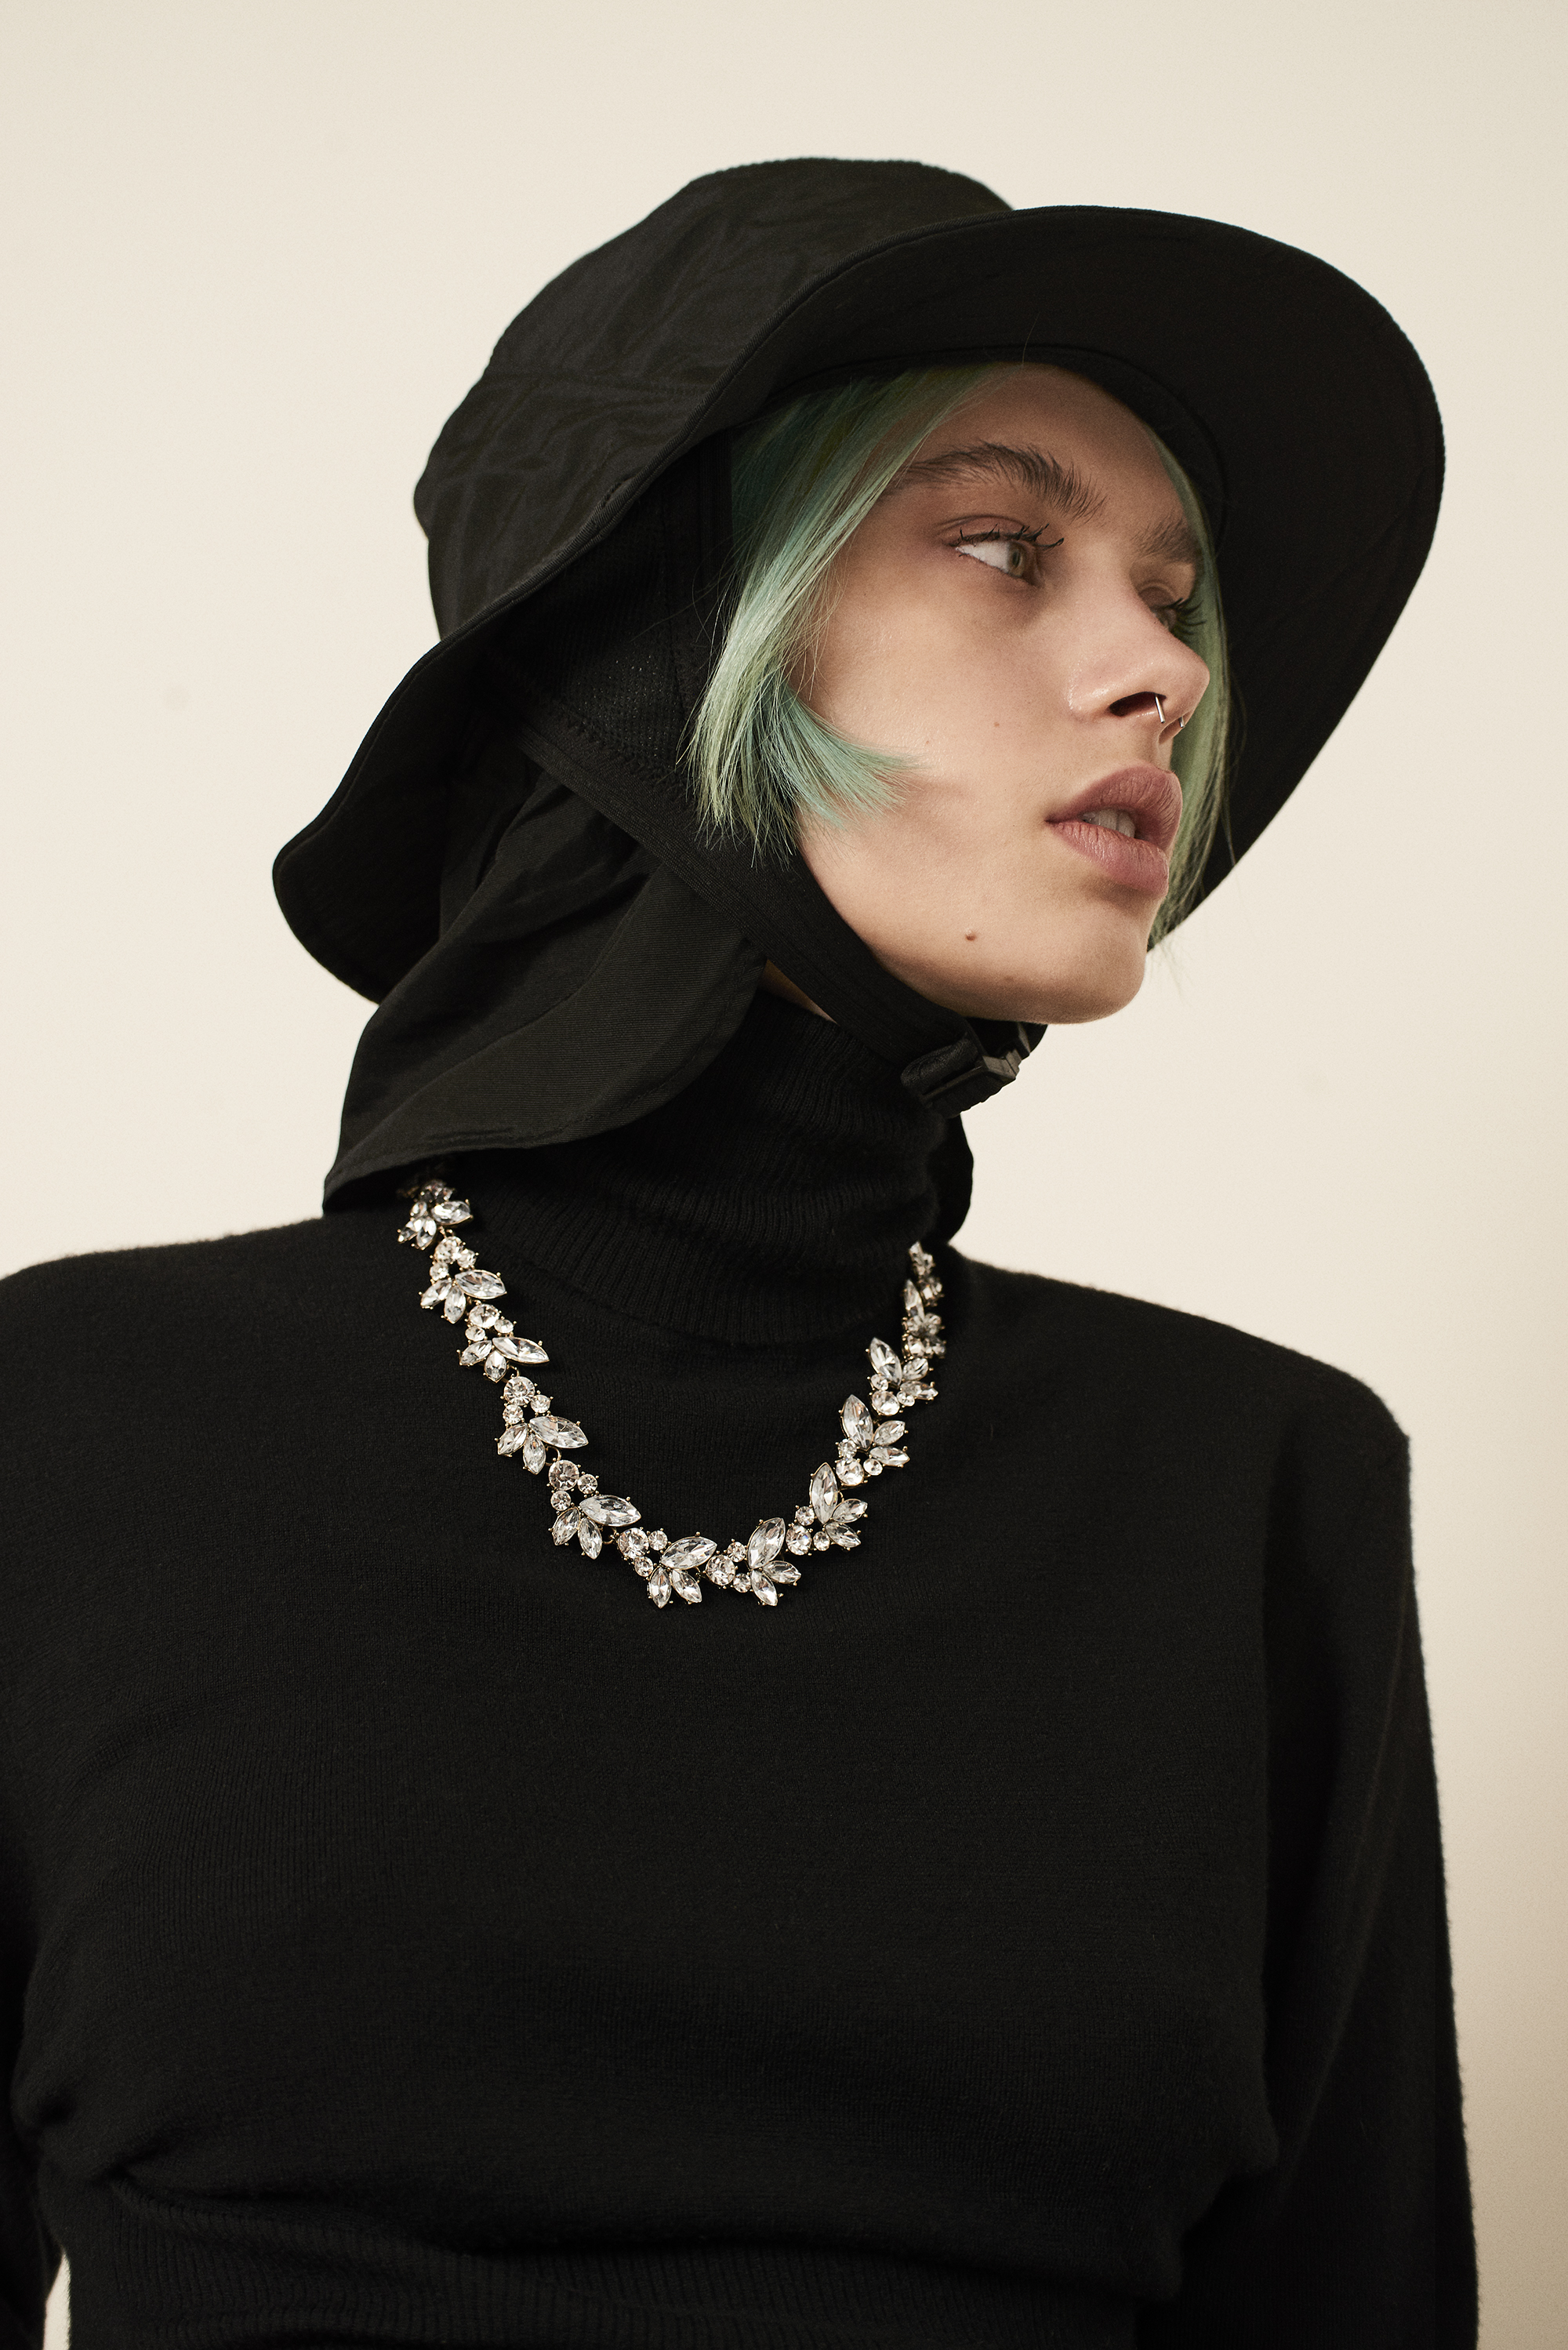 Turtle neck sweater  Saint Laurent . Hat  Dakine . Necklace  Givenchy